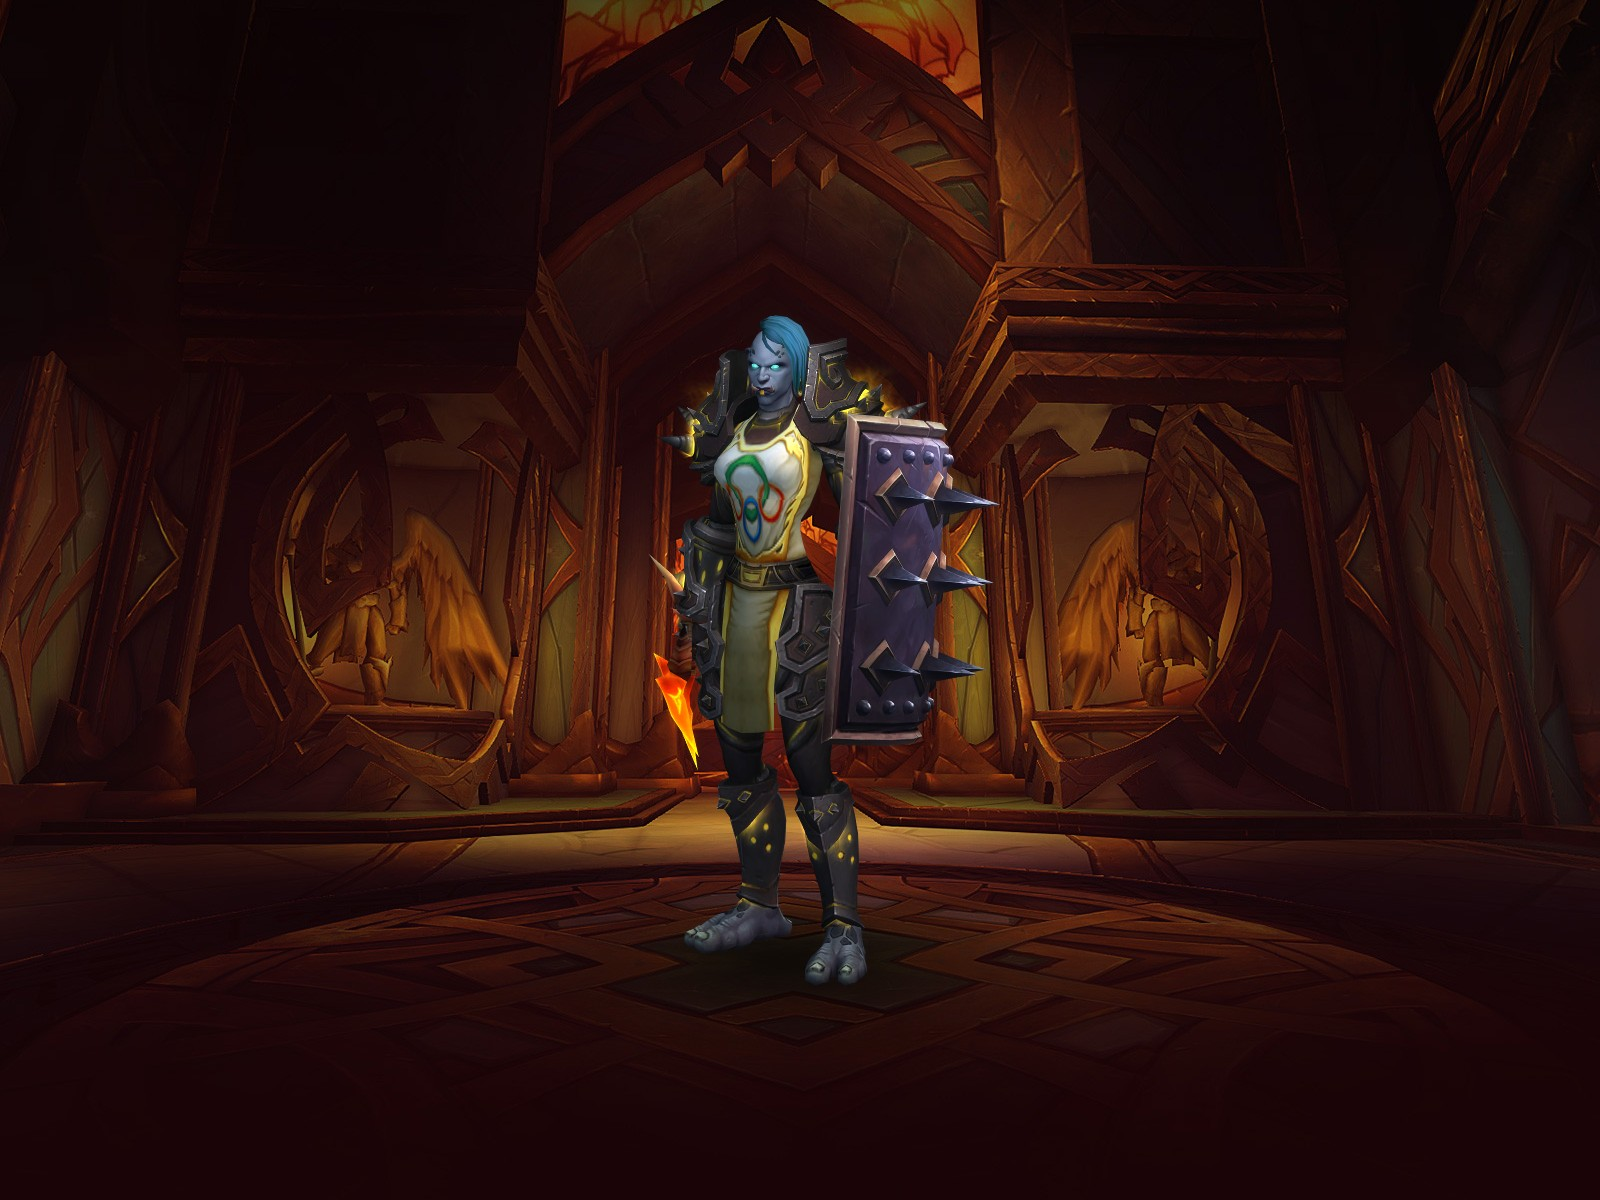 Fury/Prot Warrior LF Heroic guild - Looking for Players